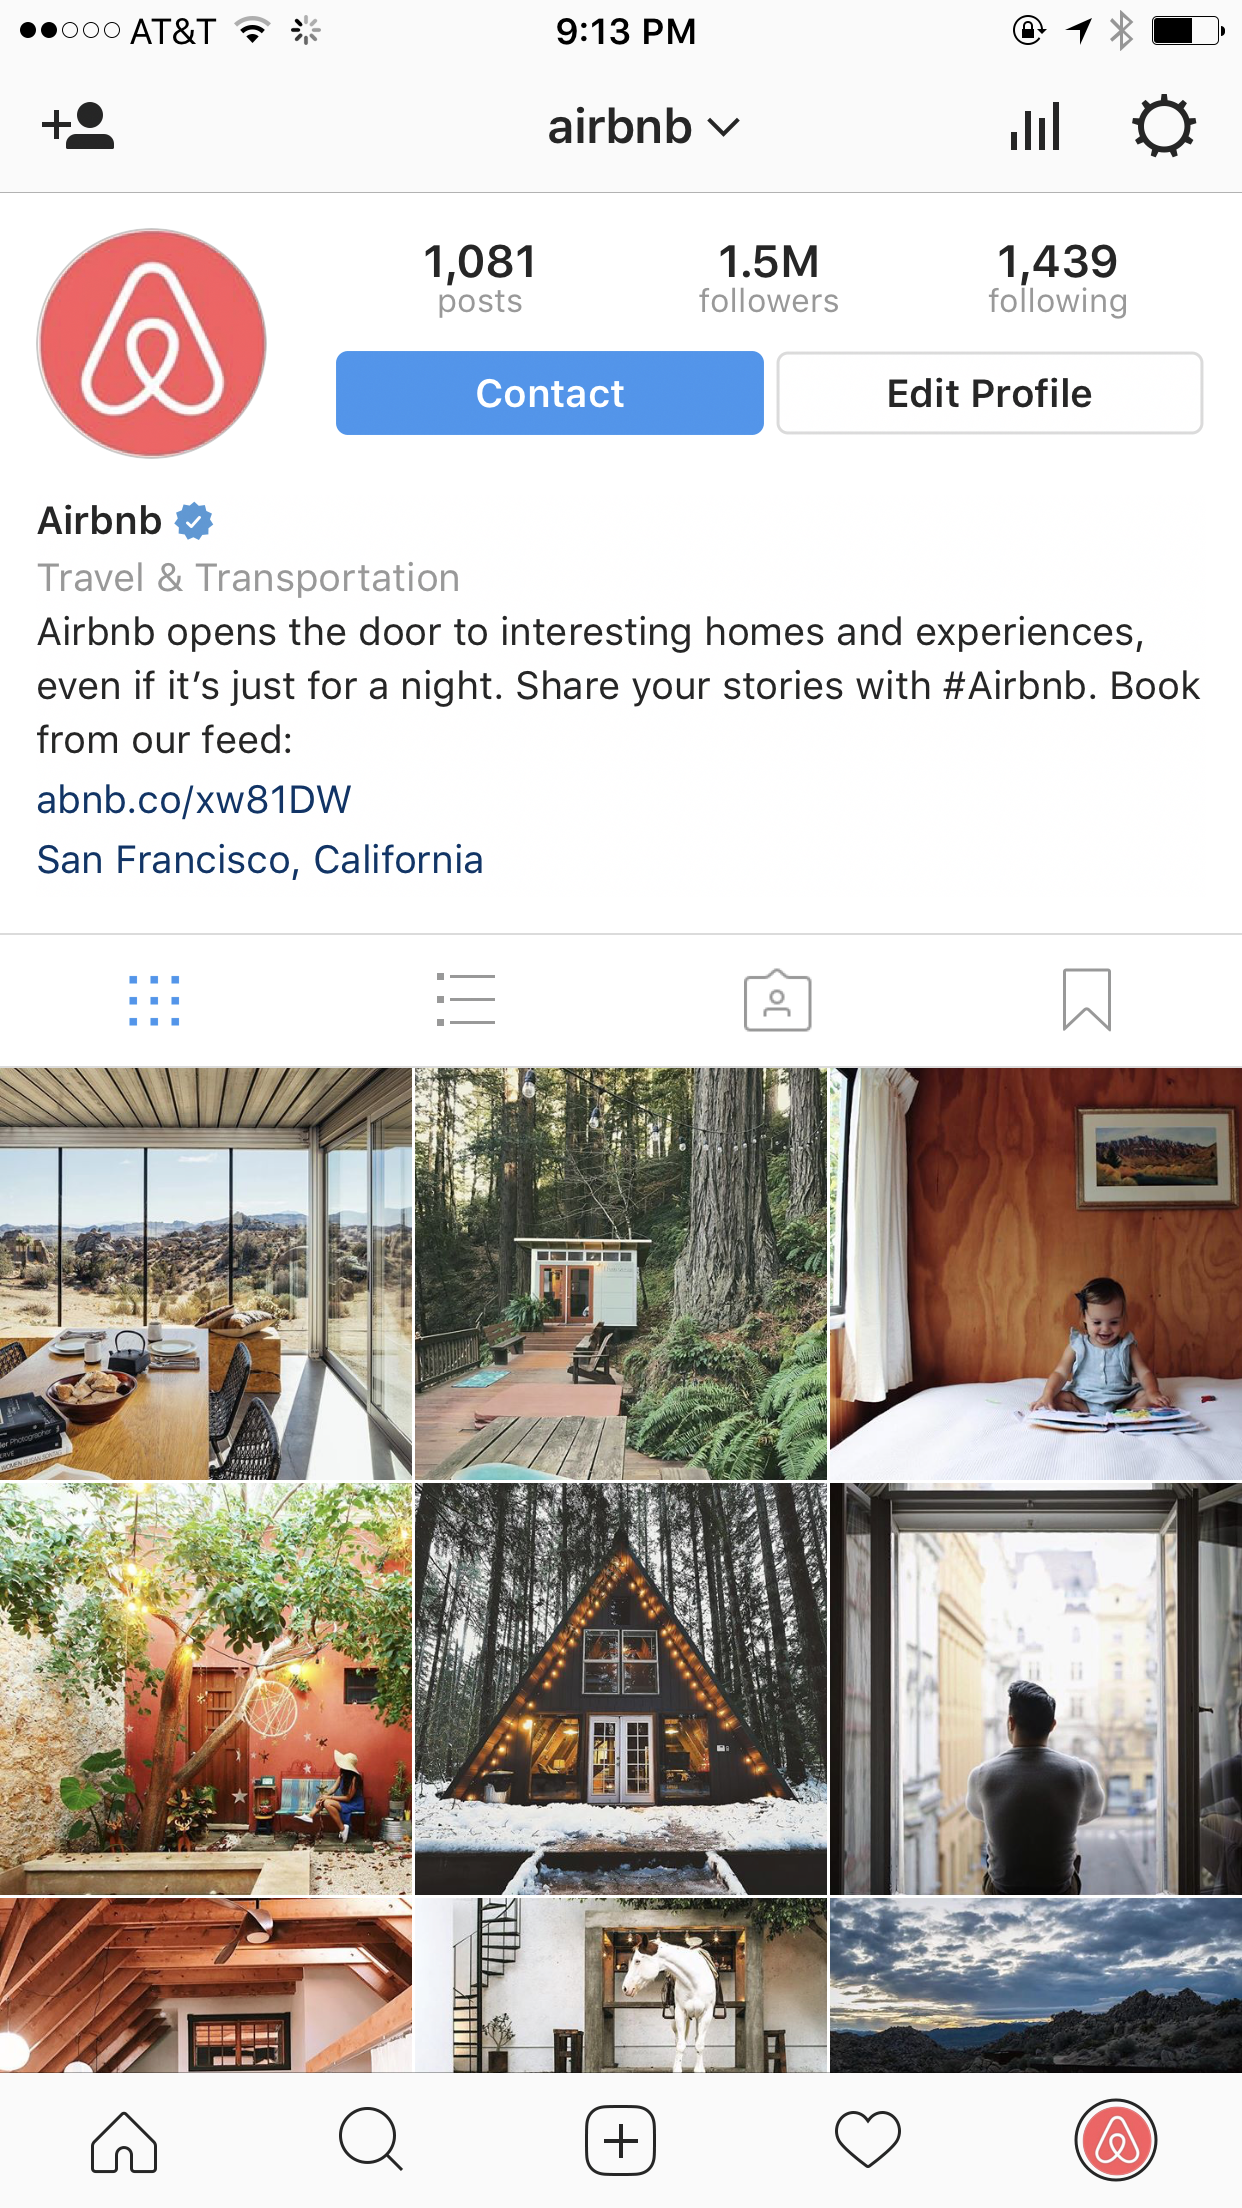 Airbnb on Instagram - The Shorty Awards